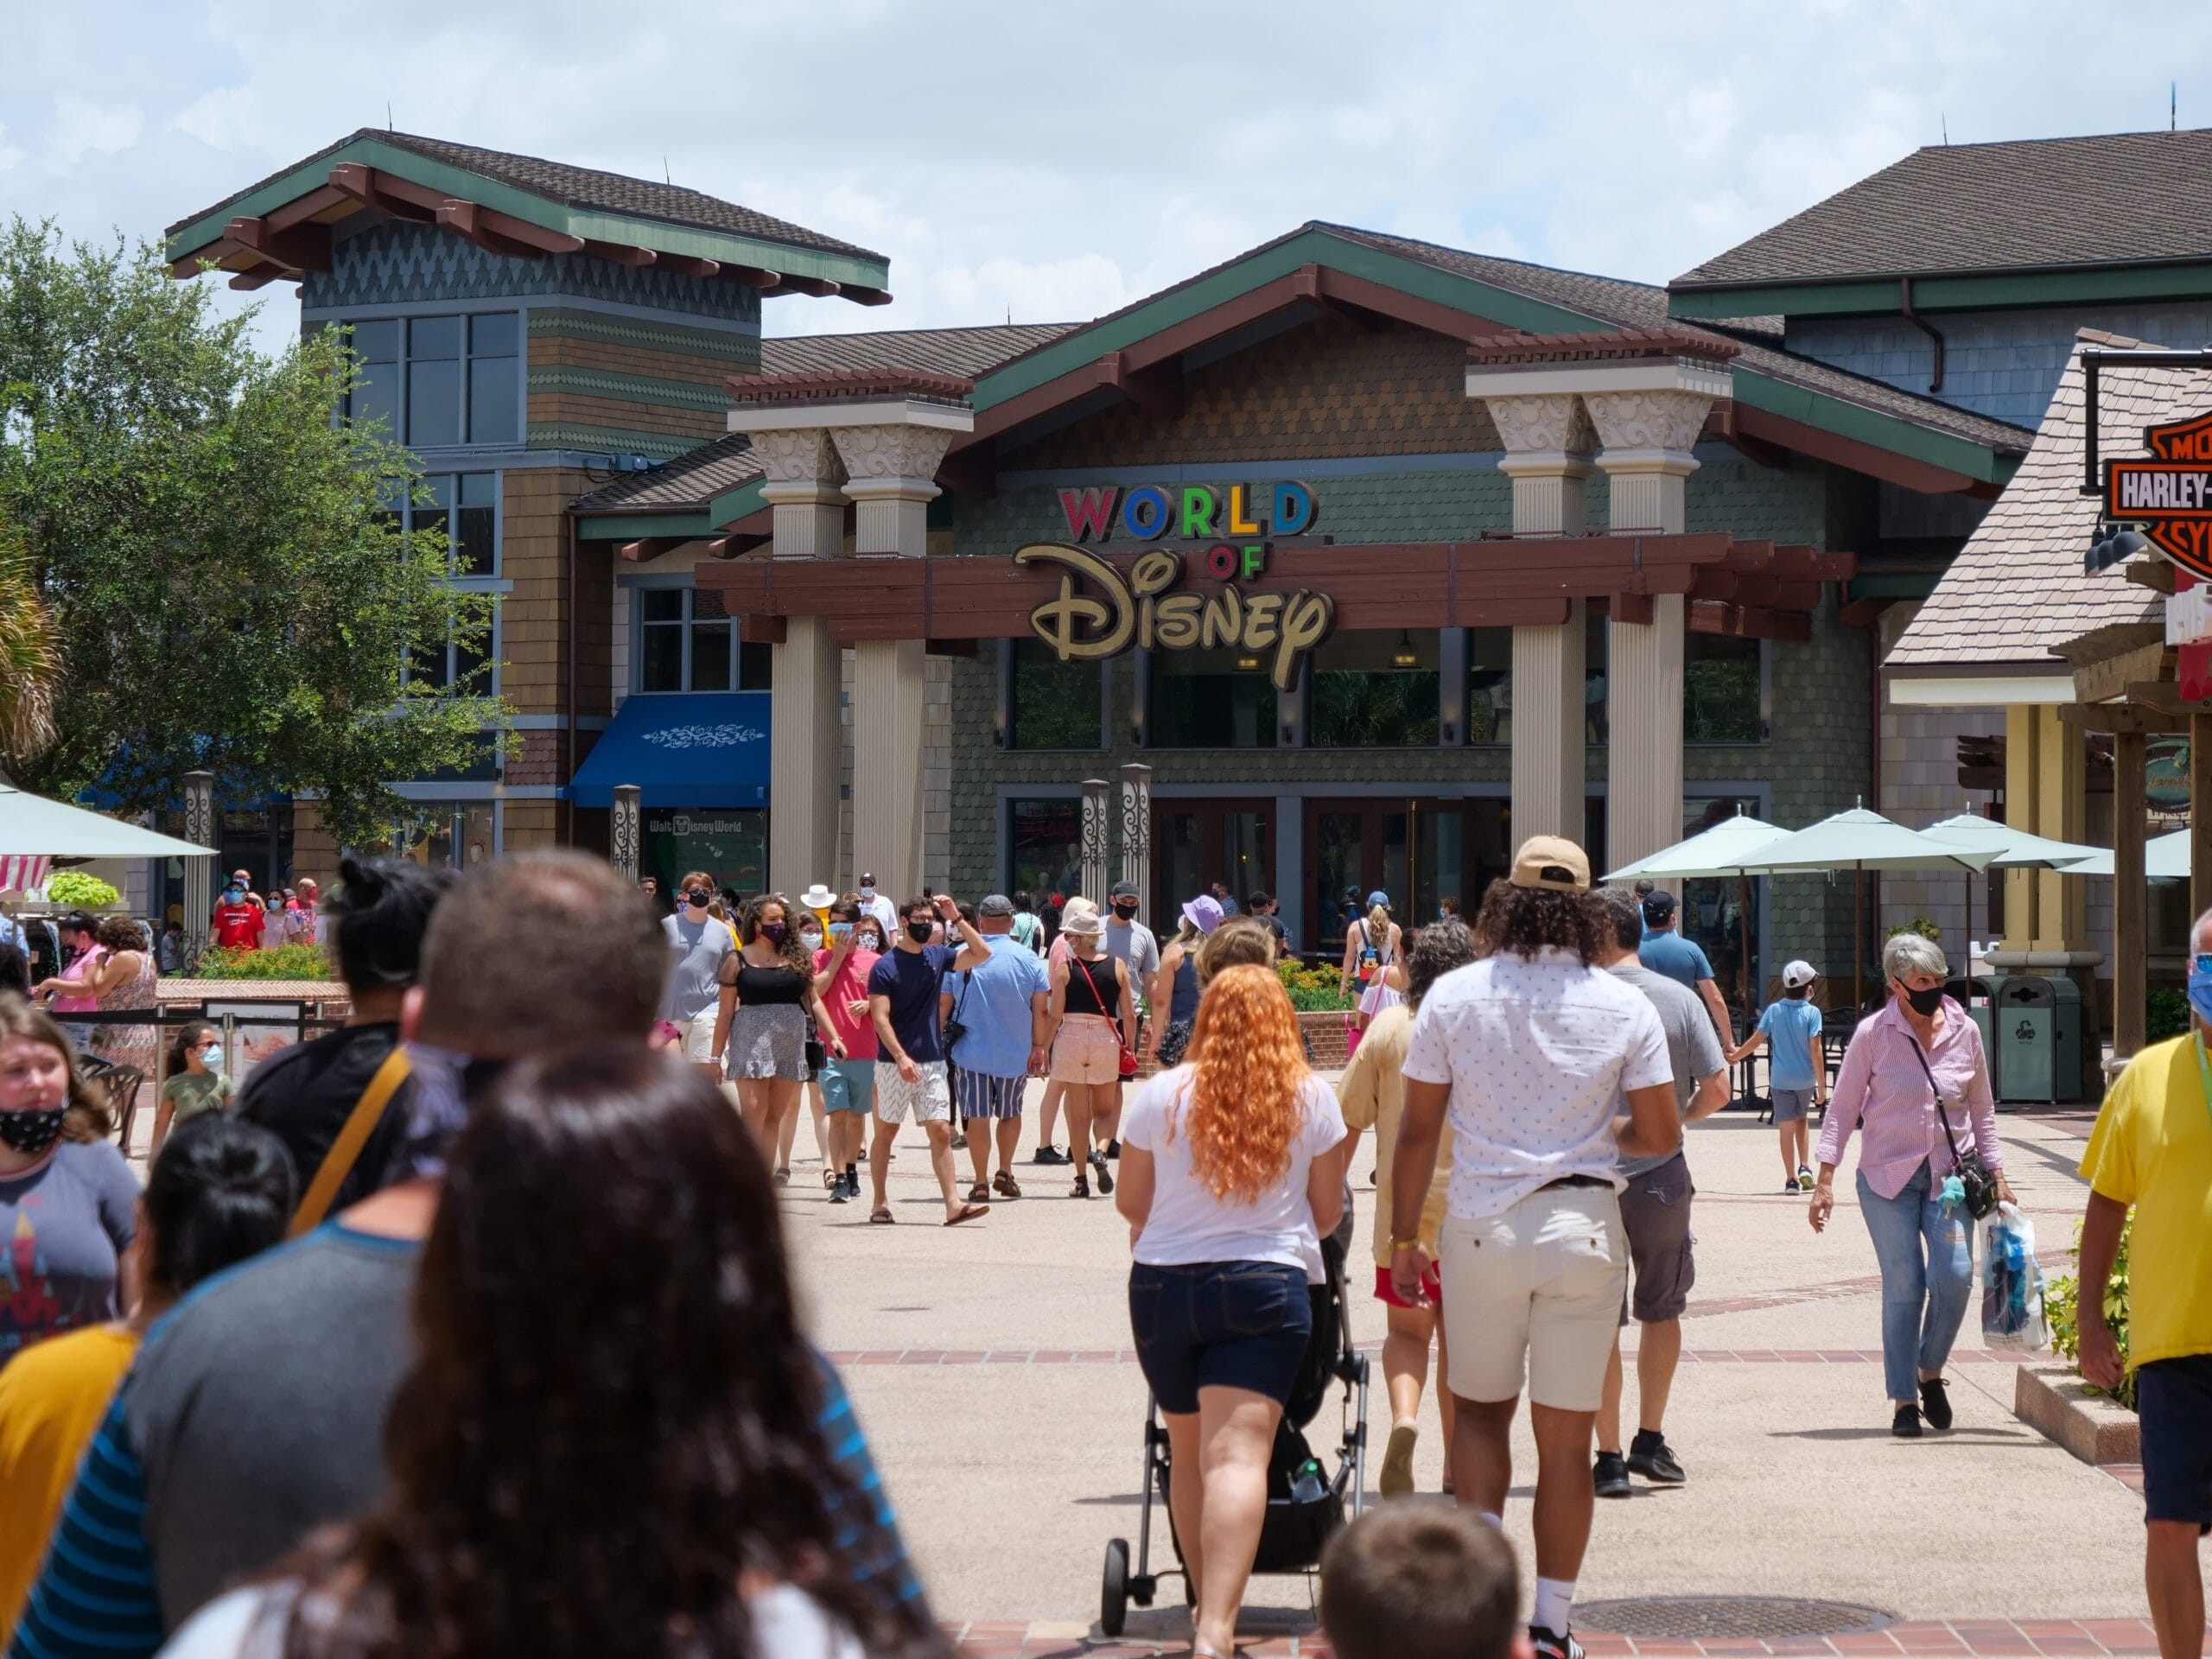 Disney Springs Currently At Capacity Due To Labor Day-Labor Day 2021 Wdw Crowds